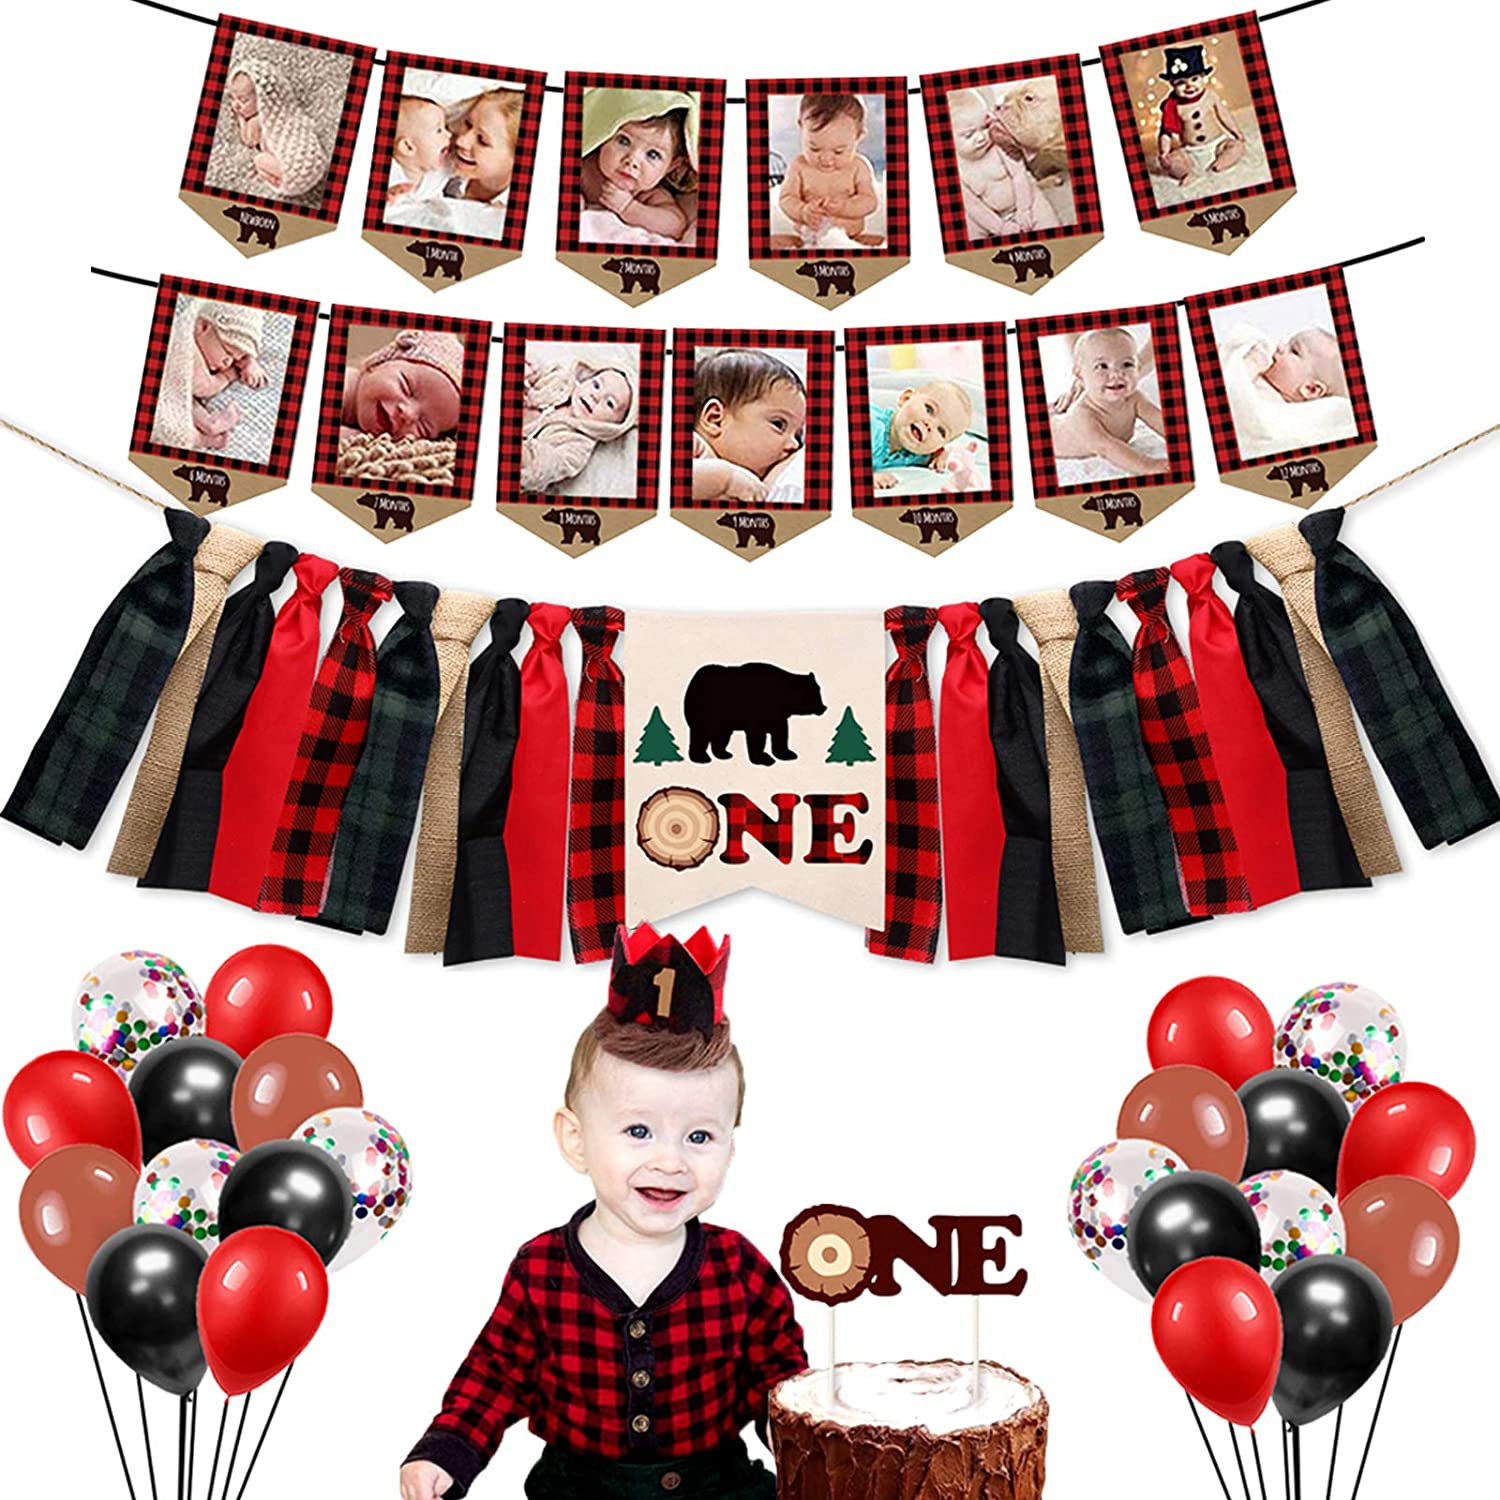 Spring new work one after another Lumberjack First Birthday Party Supplies Super sale - P Buffalo Decorations